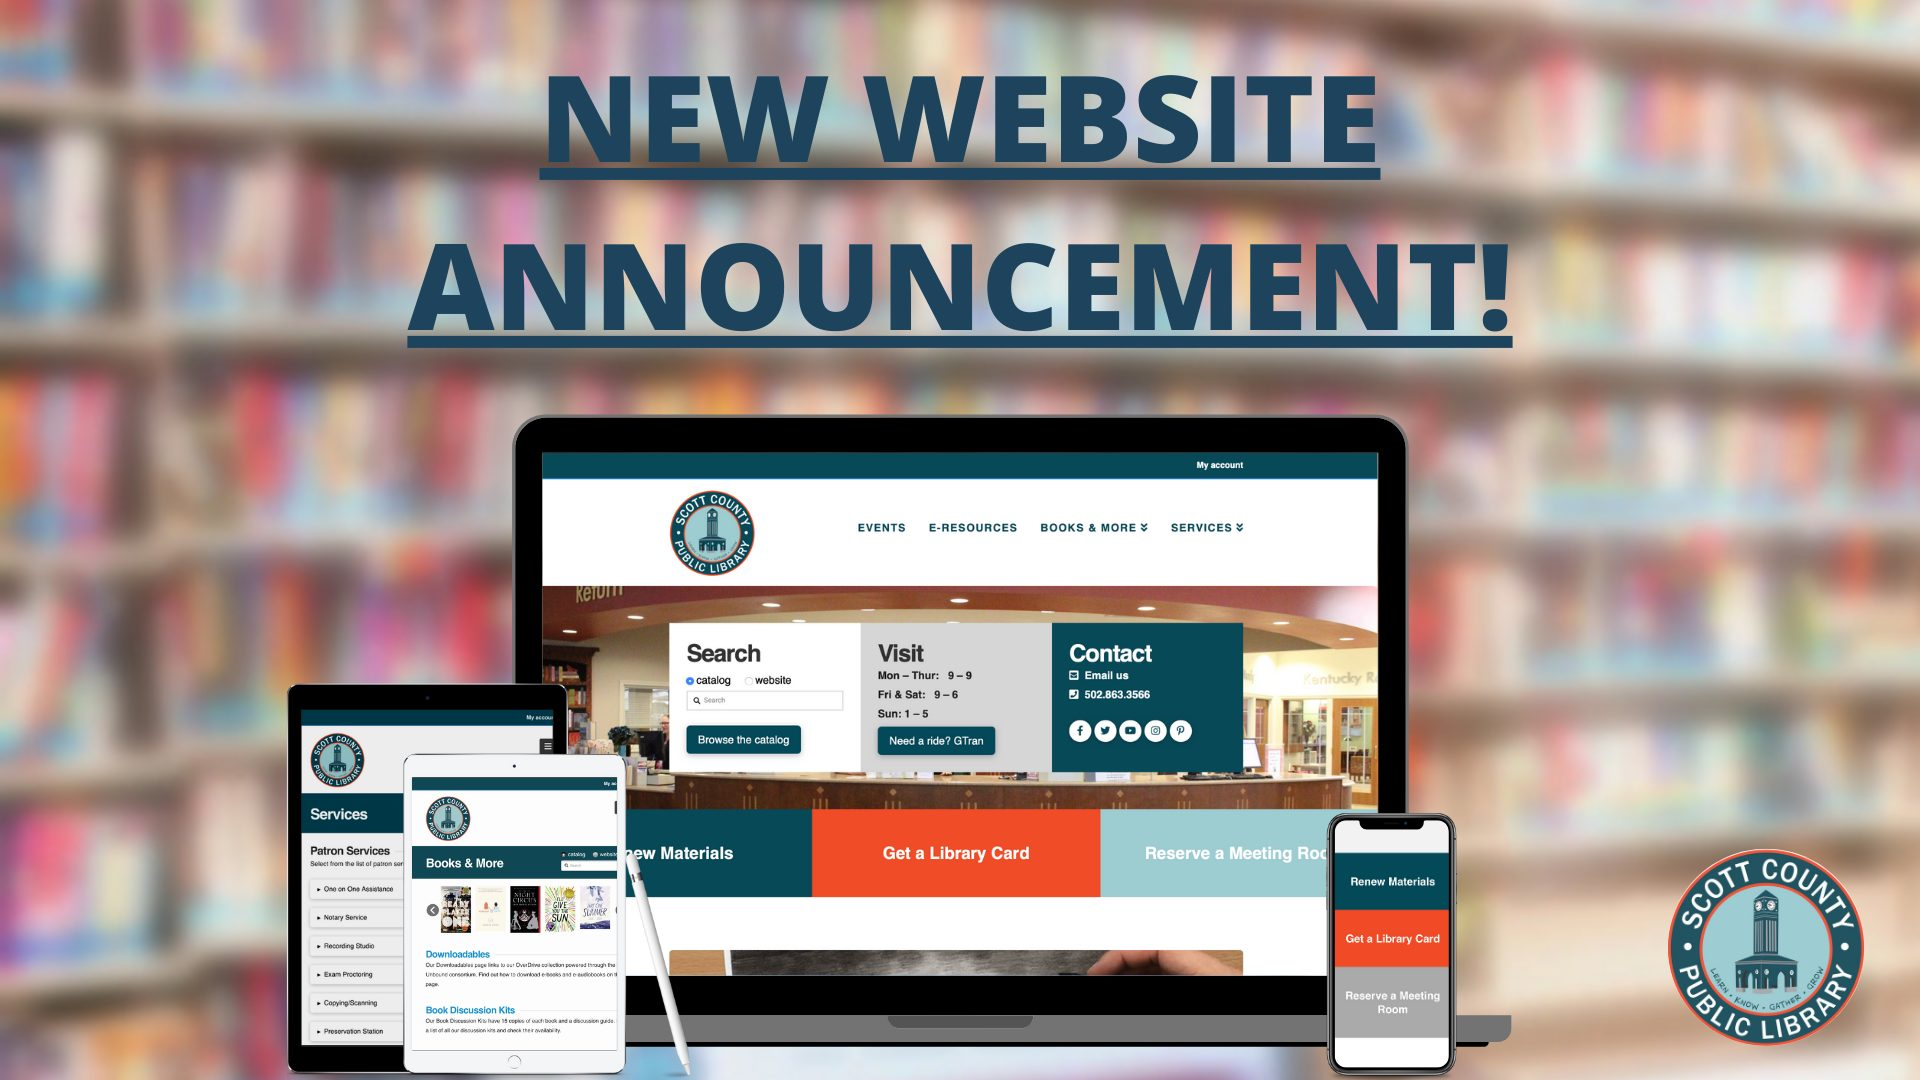 New Website Announcement from SCPL